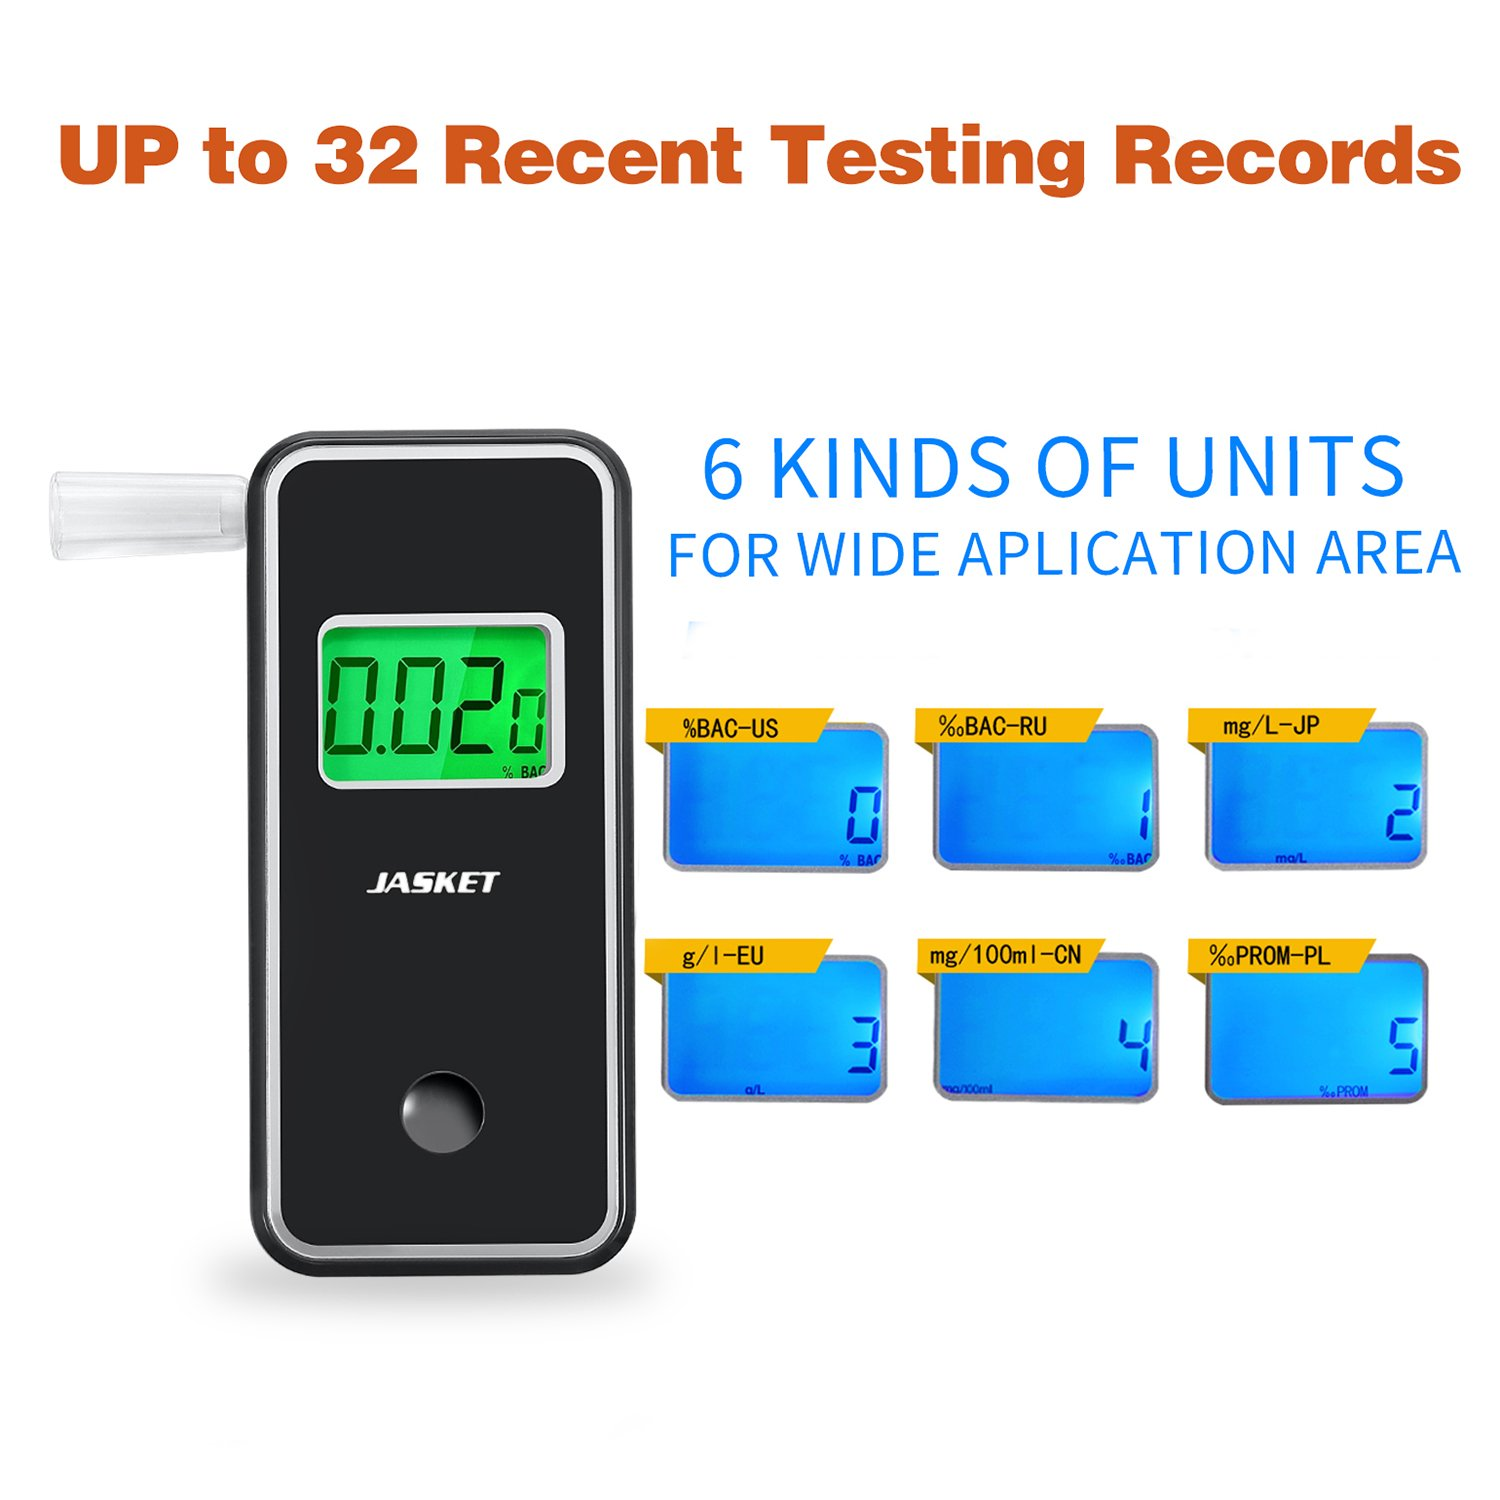 JASTEK Breathalyzer Professional Portable Digital Breath Alcohol Tester with 5 Mouthpieces -Black by JASTEK (Image #2)